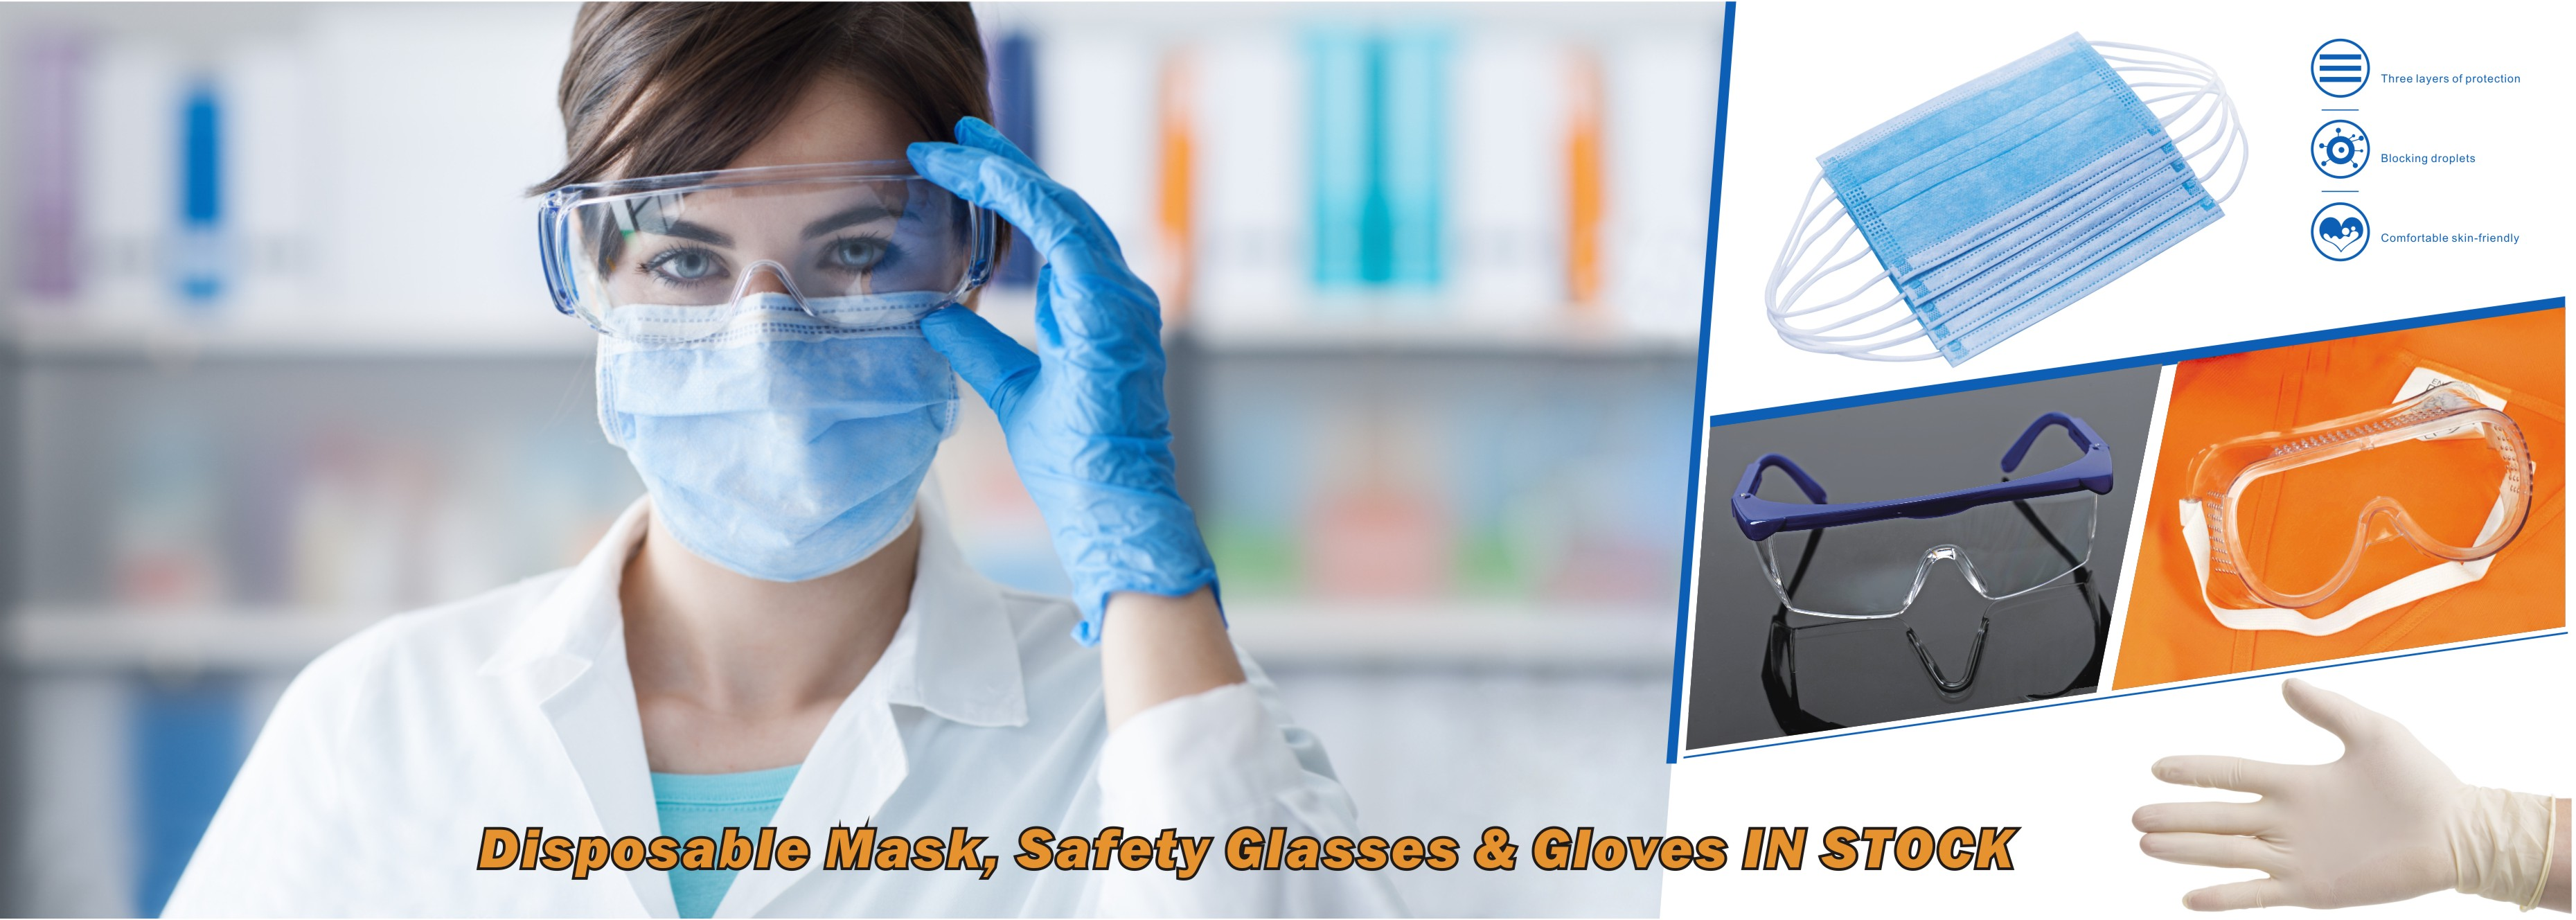 Disposable Mask, Safety Glasses & Gloves IN STOCK